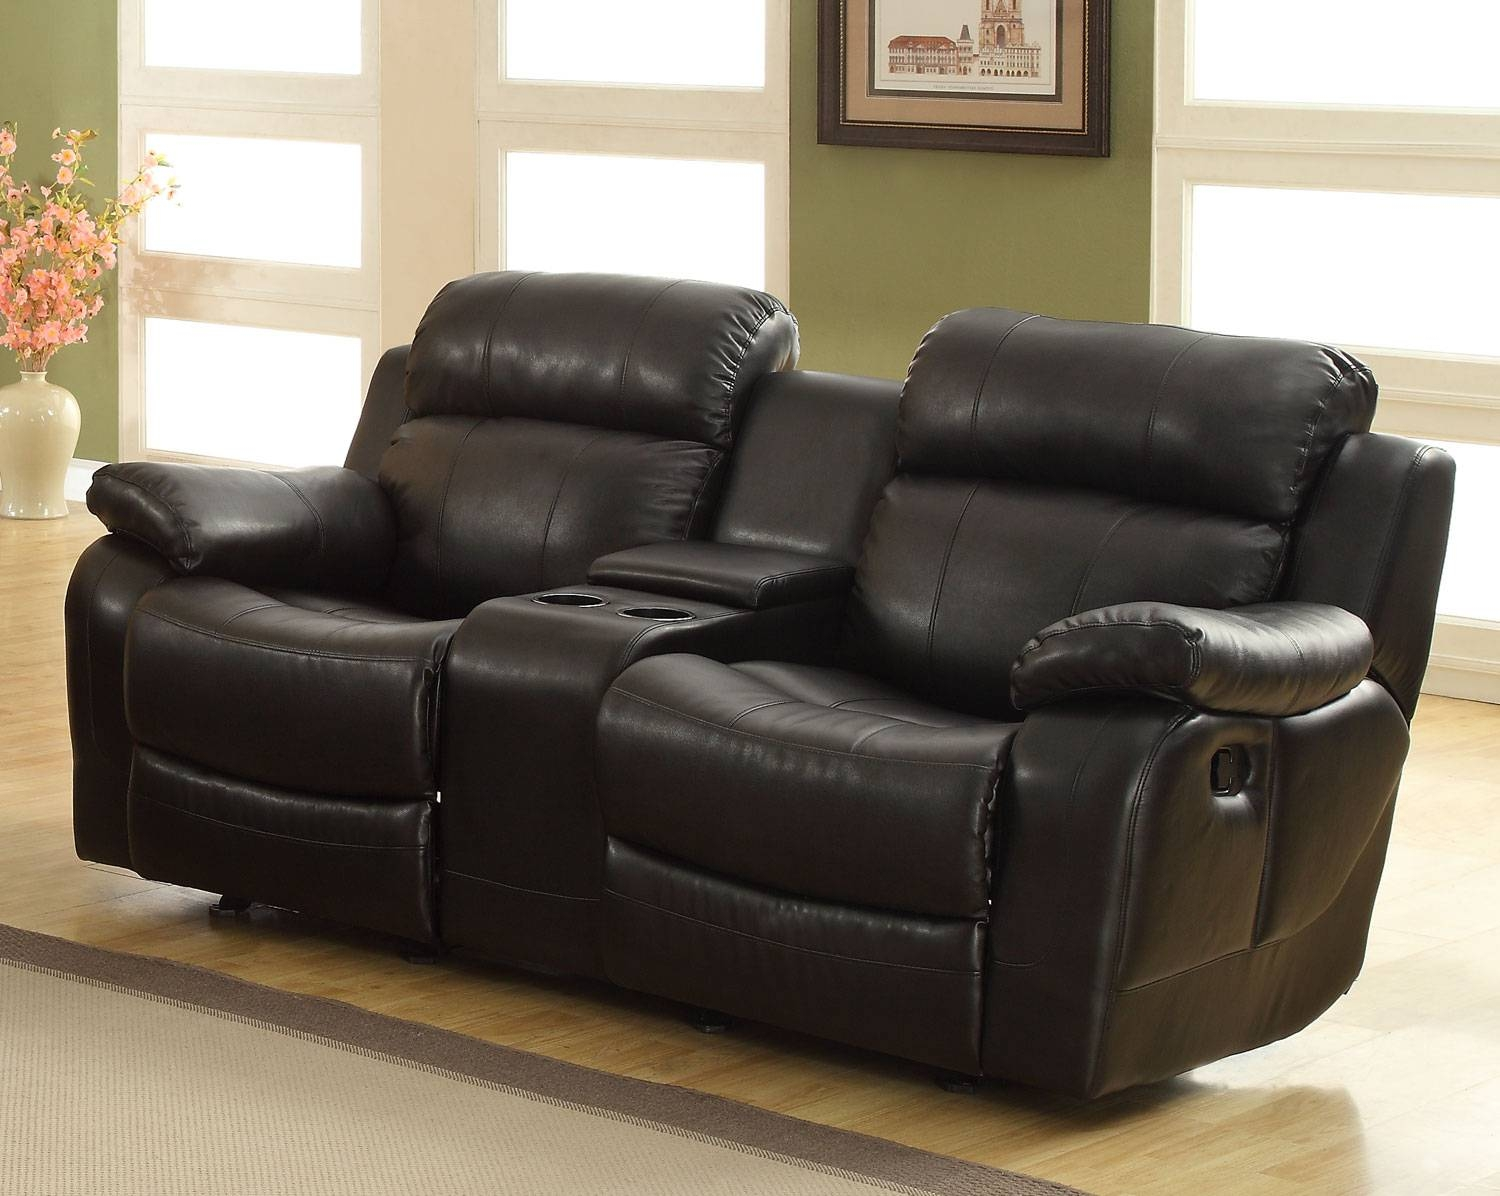 Sofas Center : Beigeing Sofa Best Decoration Double With Center intended for Sofas With Consoles (Image 7 of 30)